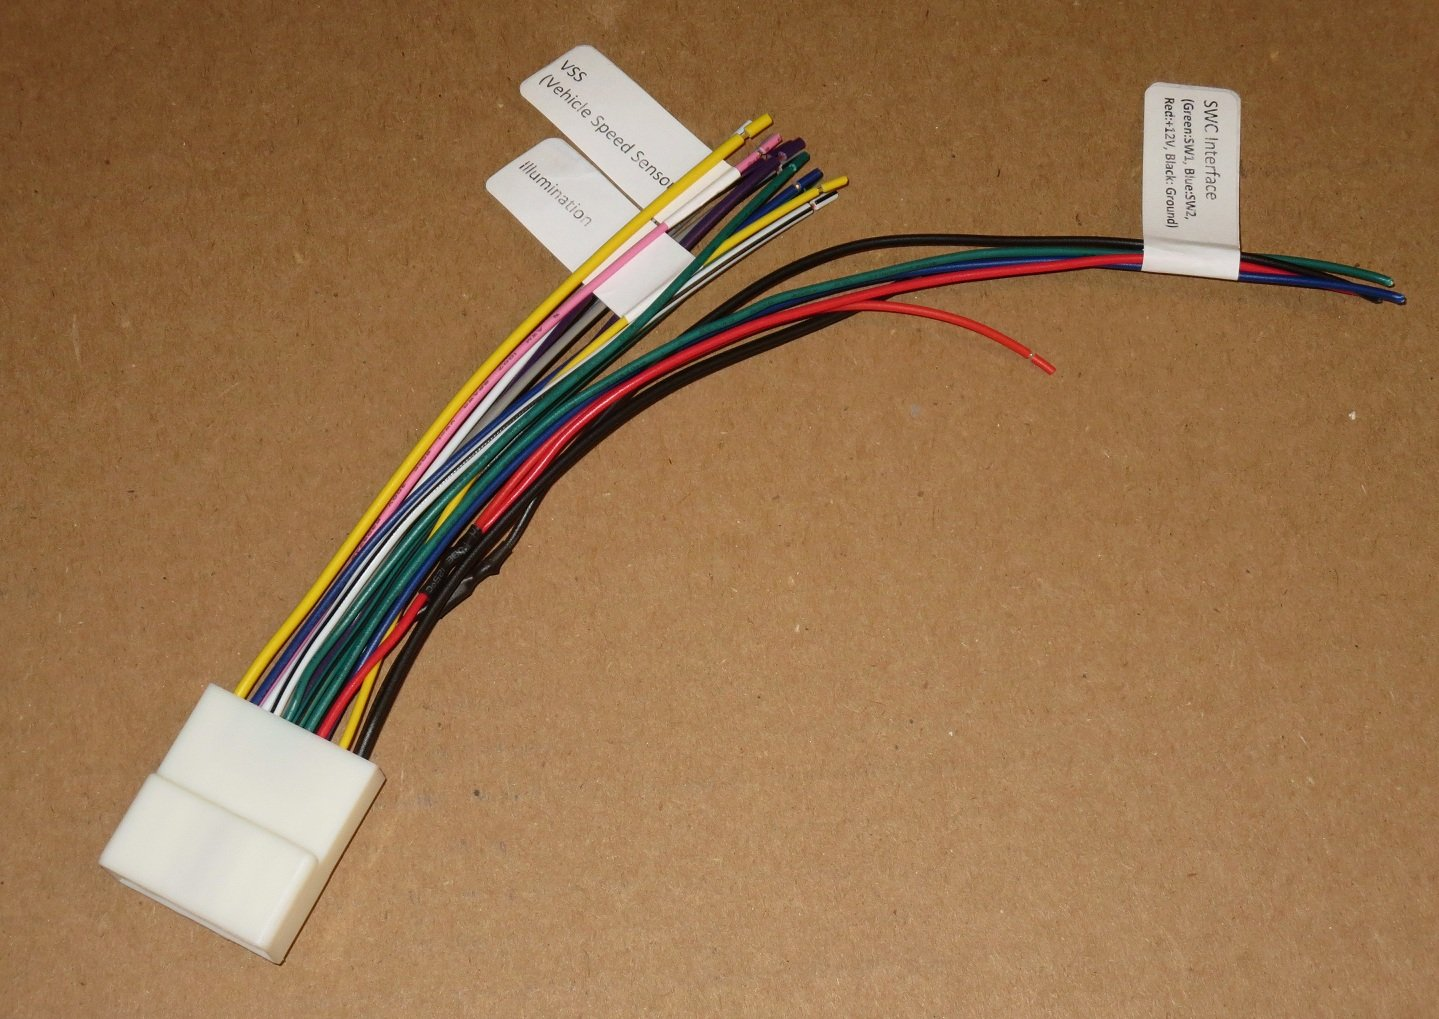 Subaru Impreza Radio Wiring Harness Manual Of Diagram 2008 20 Pin Head Unit 31 Images 2002 2005